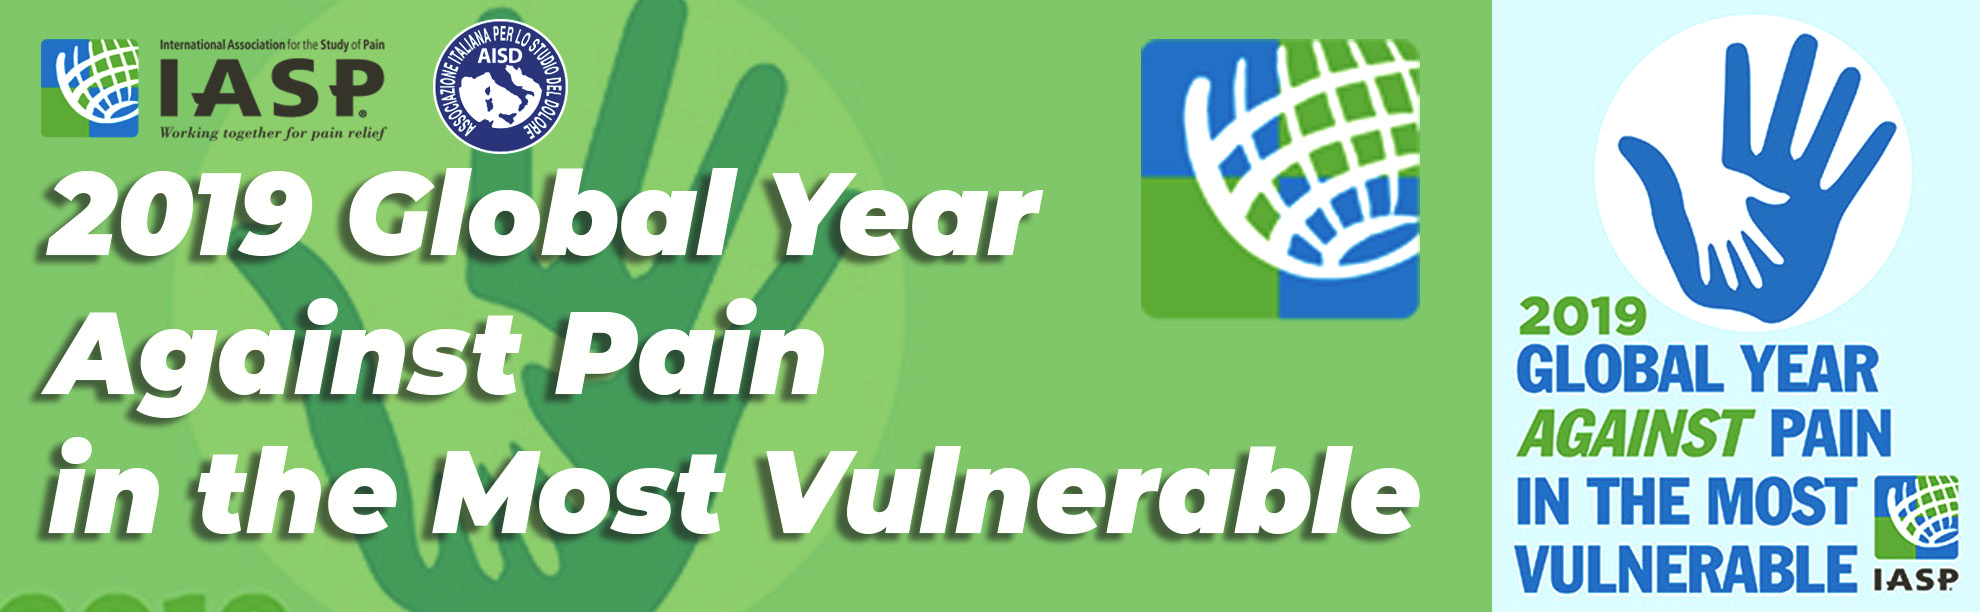 Global Year against Pain 2019